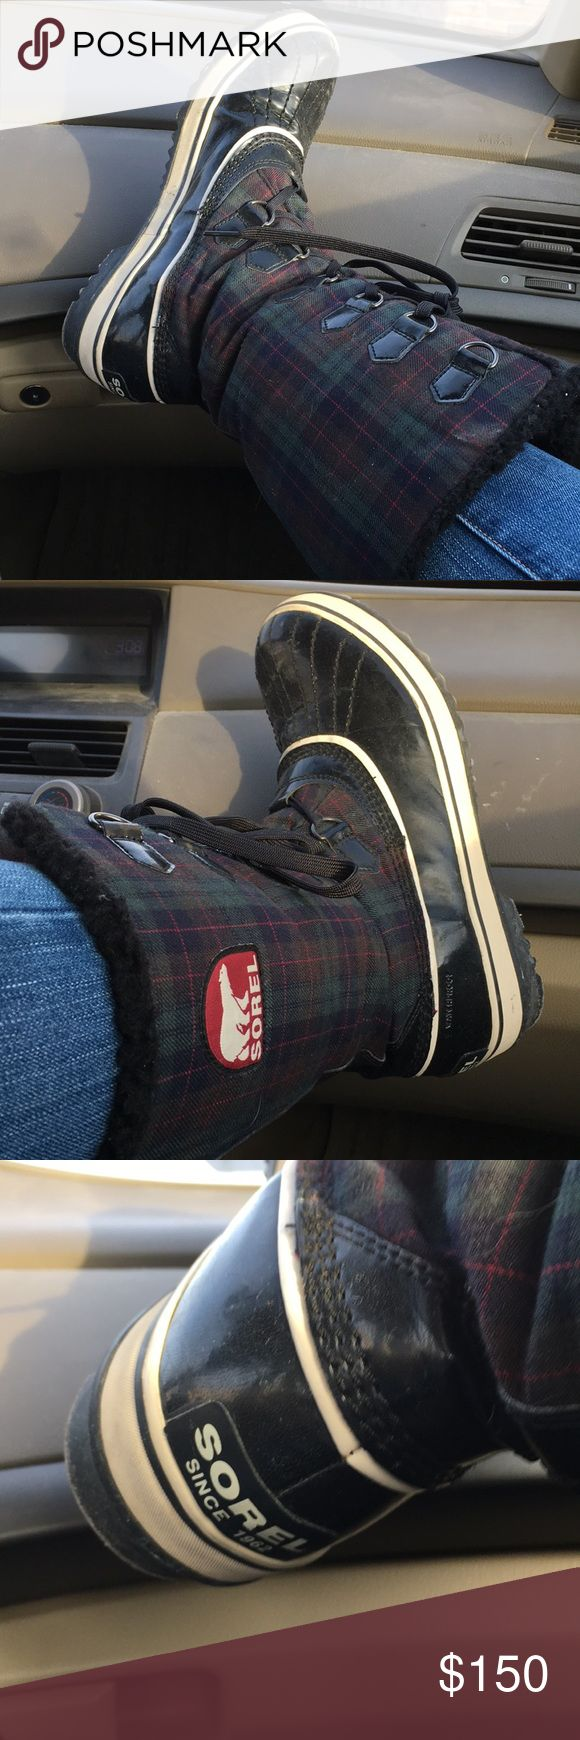 Plaid Sorel Winter Boots Used but in great condition! Plaid is composed of green, blue and red. Interior is lined with black fuzz. Soles are black and white. These say they're a women's 10 but they fit snugly and feel more like 9's.   Cat friendly household 🐱❤️ Smoke free home ✅  Feel free to ask questions and/or offer! Sorel Shoes Winter & Rain Boots